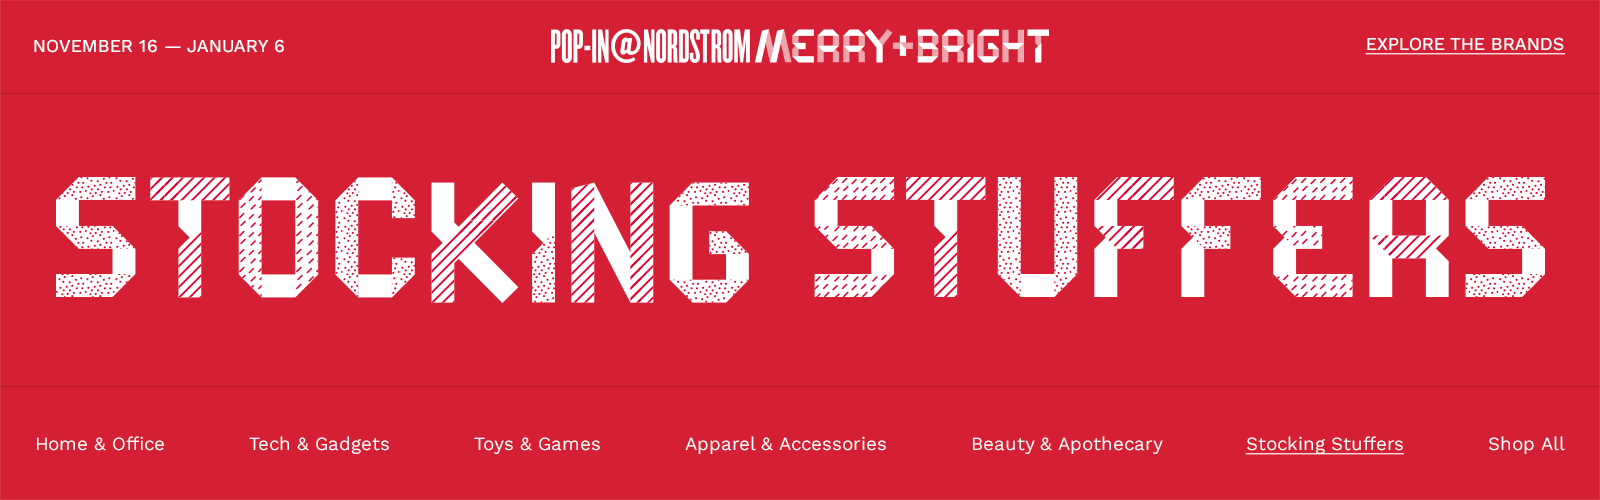 Shop stocking stuffers. Pop-In@Nordstrom Merry+Bright. November 16 to January 6.